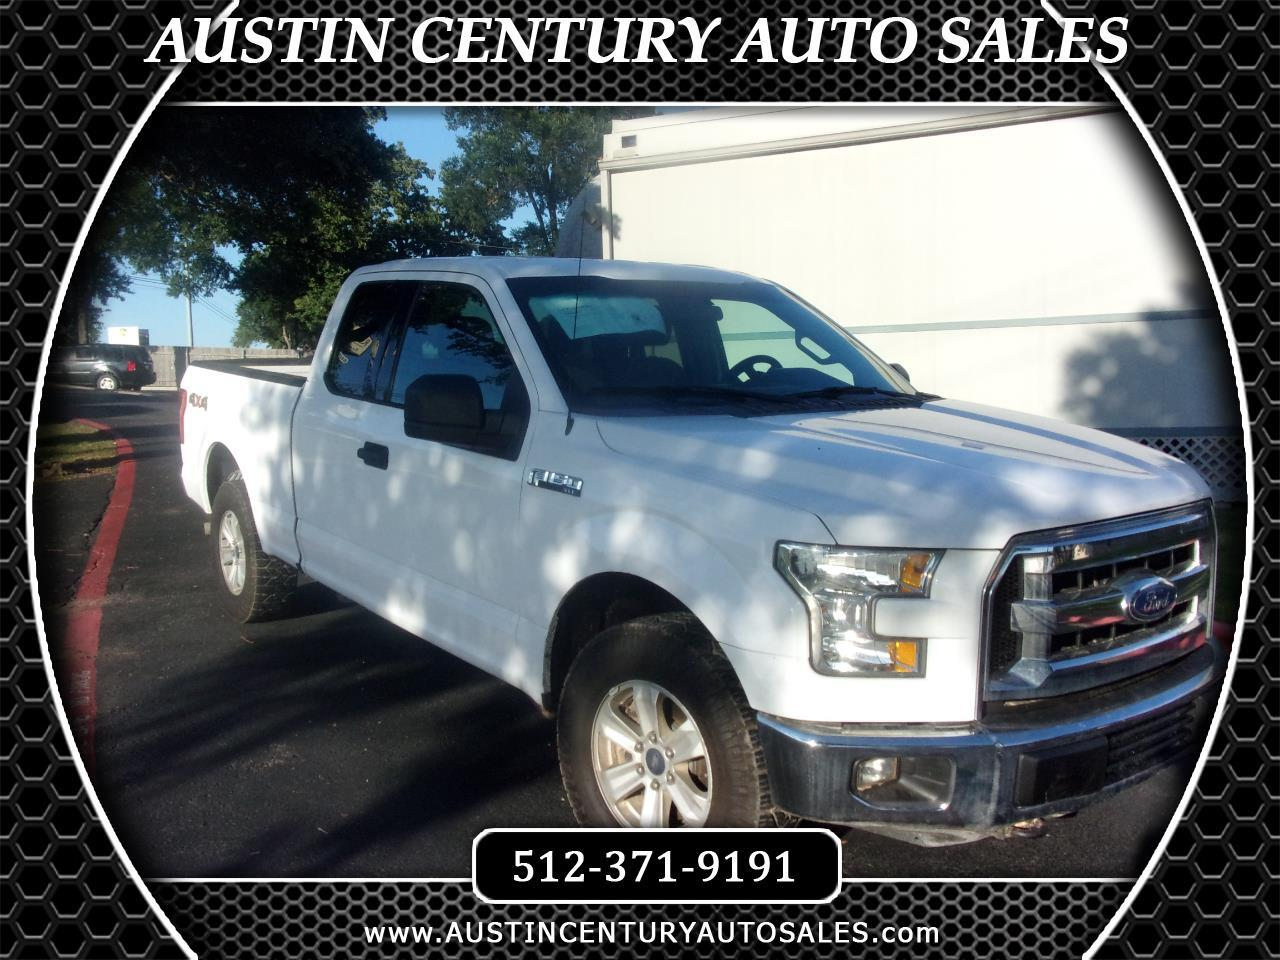 2015 Ford F-150 Supercab 157